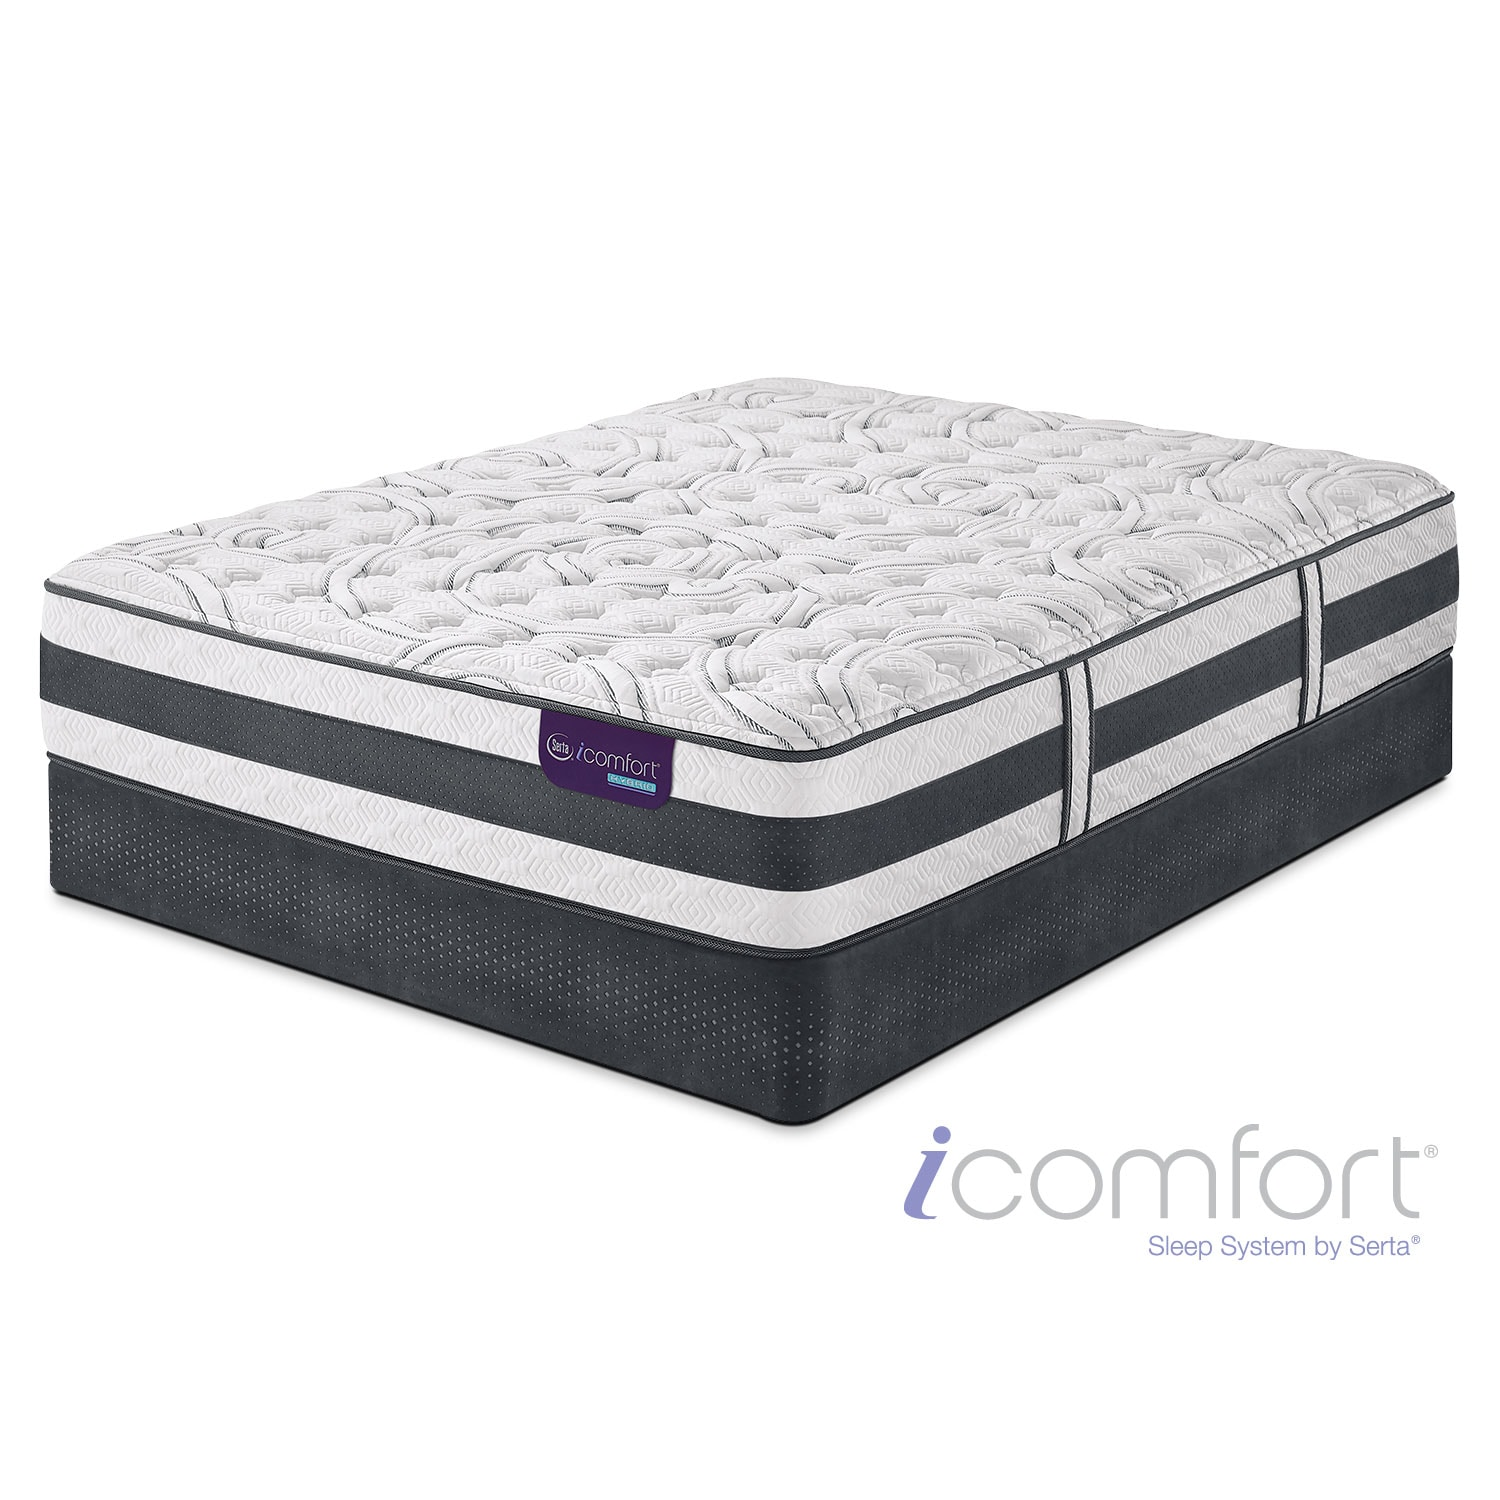 [Applause II Firm Full Mattress/Foundation Set]